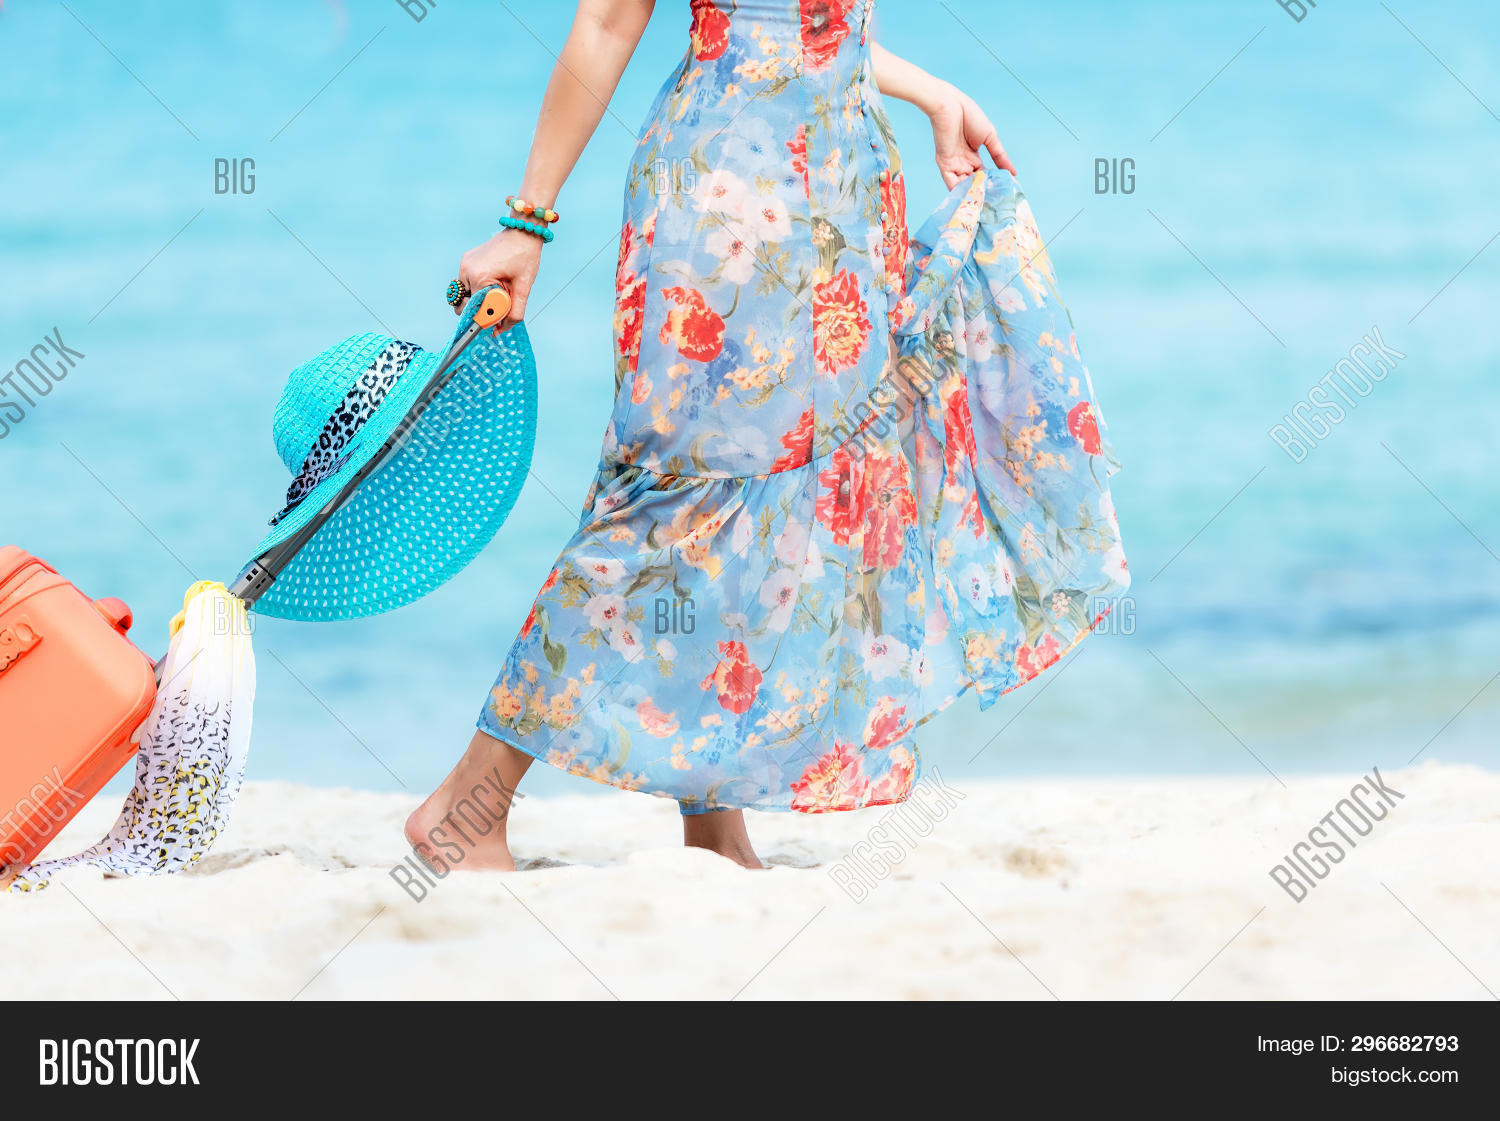 accessories,background,bag,banner,beach,border,chill,concept,dress,fashion,female,fun,happy,hat,hipster,holiday,hot,leisure,life,lifestyle,luggage,mock,model,nature,orange,planning,protection,relax,resort,rest,sandals,sea,season,sky,slippers,starfish,summer,summertime,sunblock,swimsuit,tourism,travel,traveler,trendy,trip,tropical,vacation,water,woman,wood